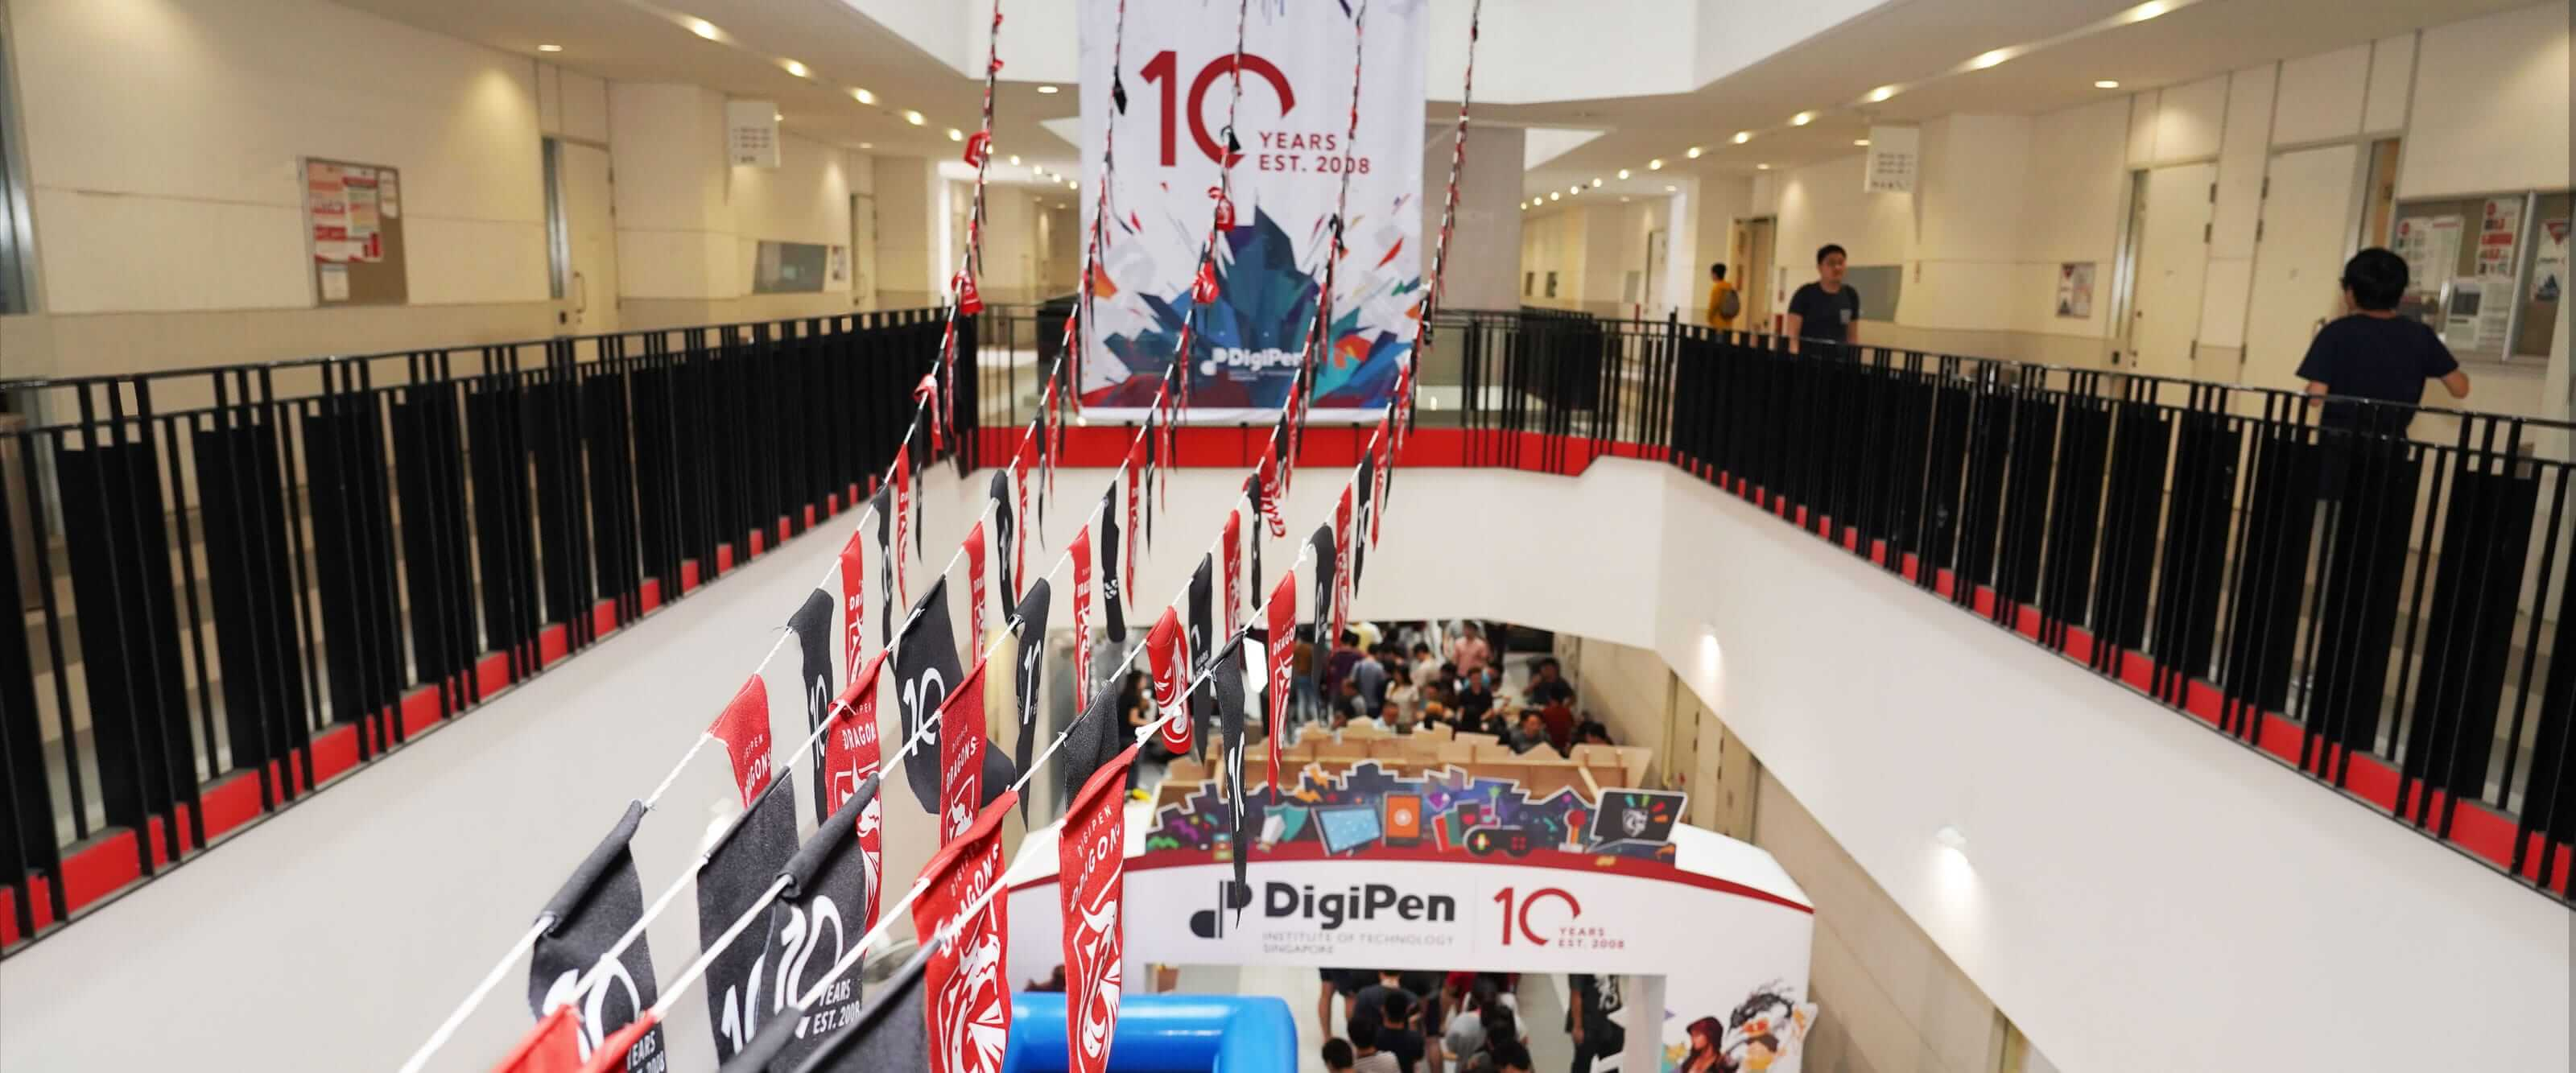 School banners and pennants hang in a multi-level, interior atrium area while a celebration takes place on the ground floor.